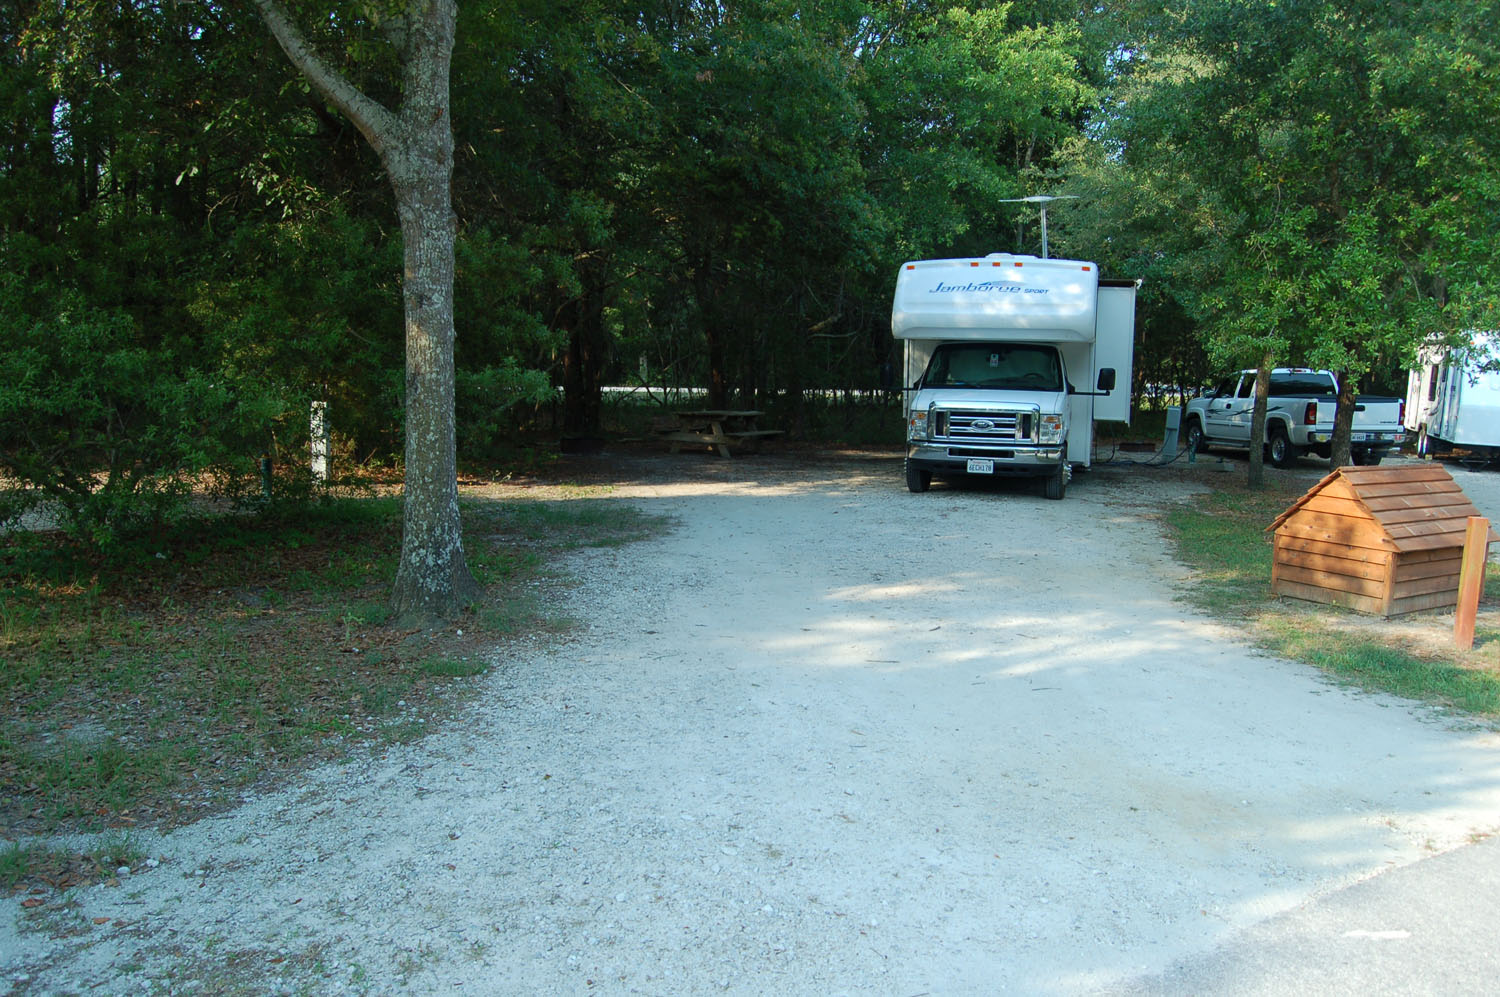 Image of campsite #69 at the Campground at James Island County Park